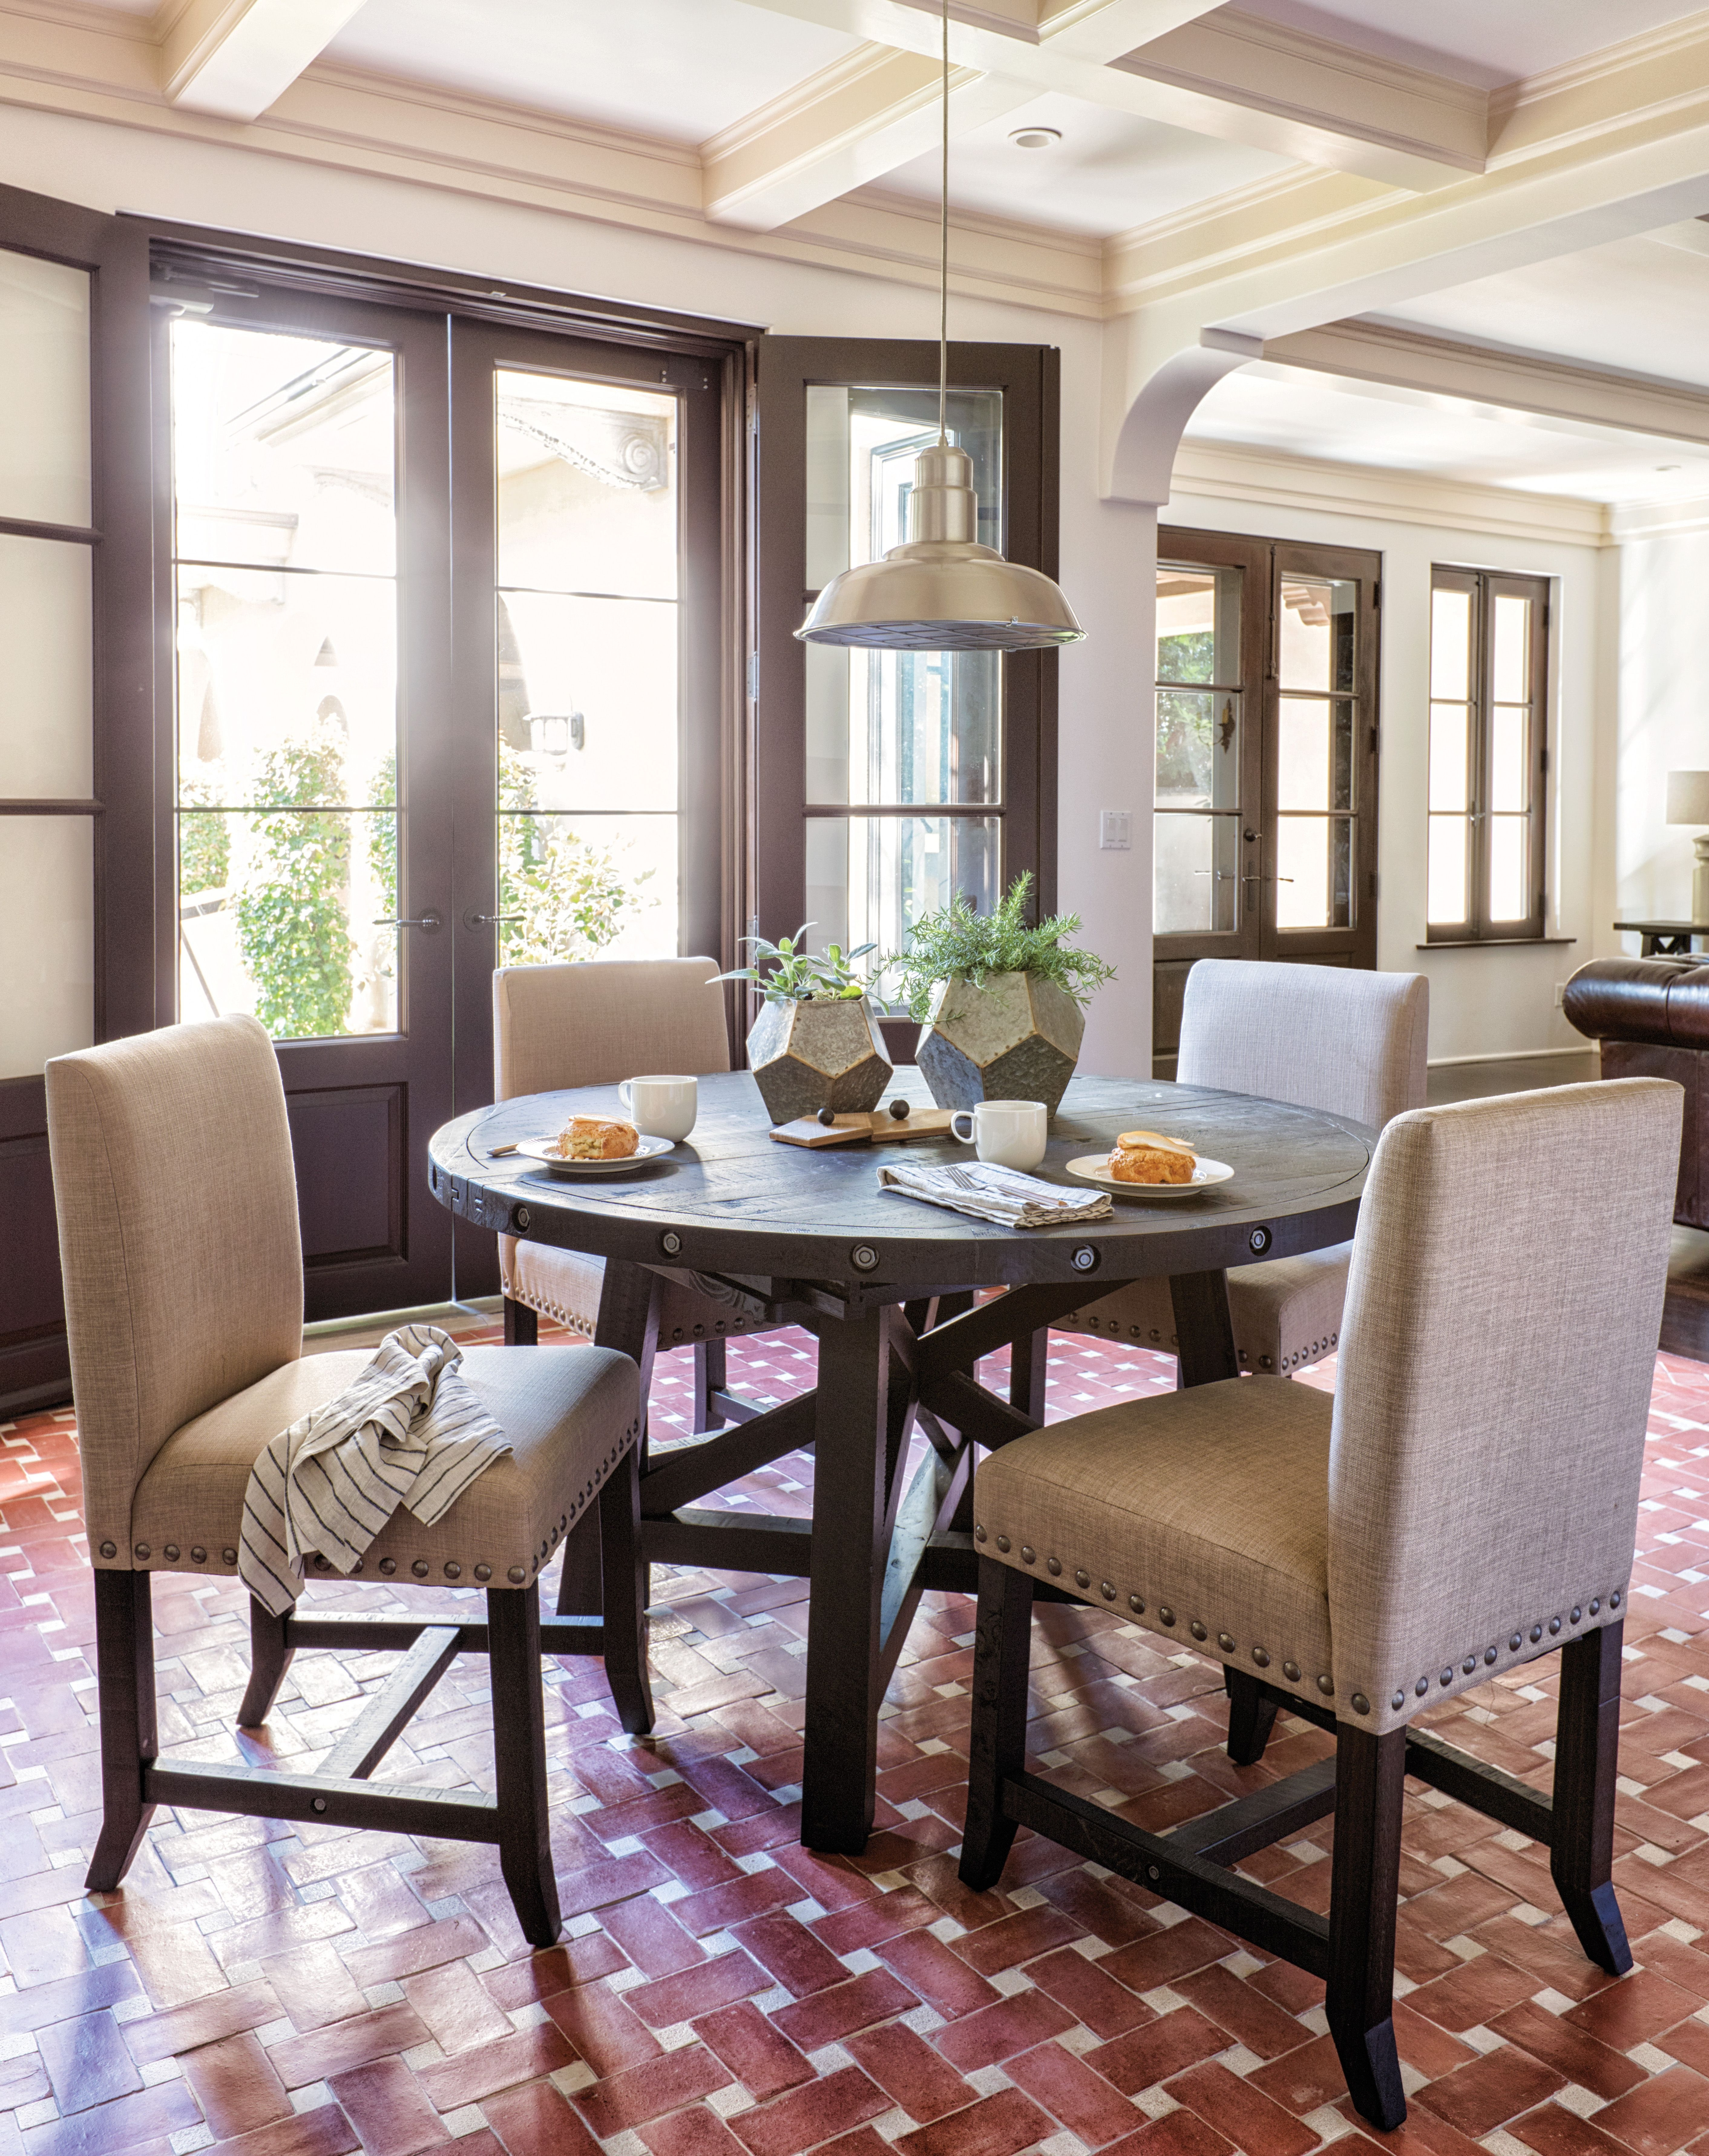 Favorite Jaxon 5 Piece Round Dining Sets With Upholstered Chairs Regarding Jaxon 5 Piece Round Dining Set (View 2 of 25)